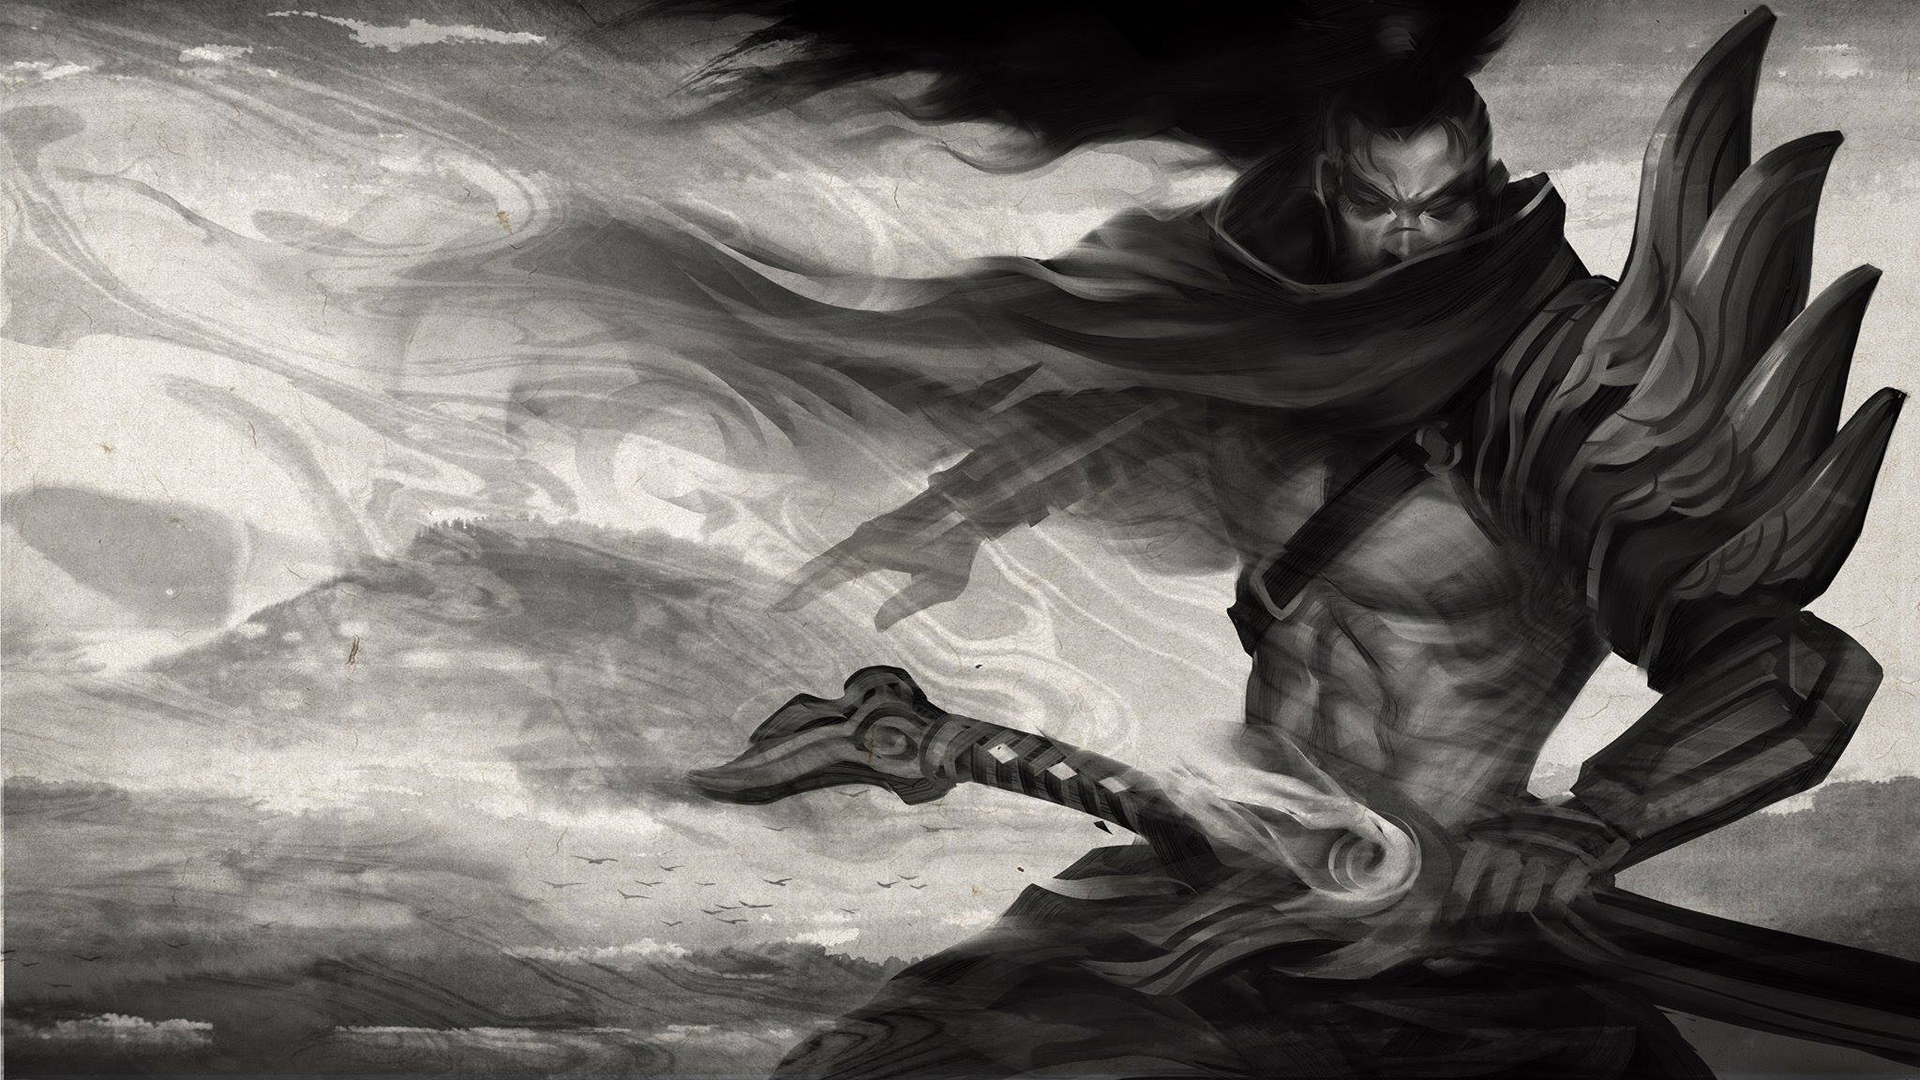 yasuo league of legends game hd wallpaper 1920x1080 1080p full 1920x1080